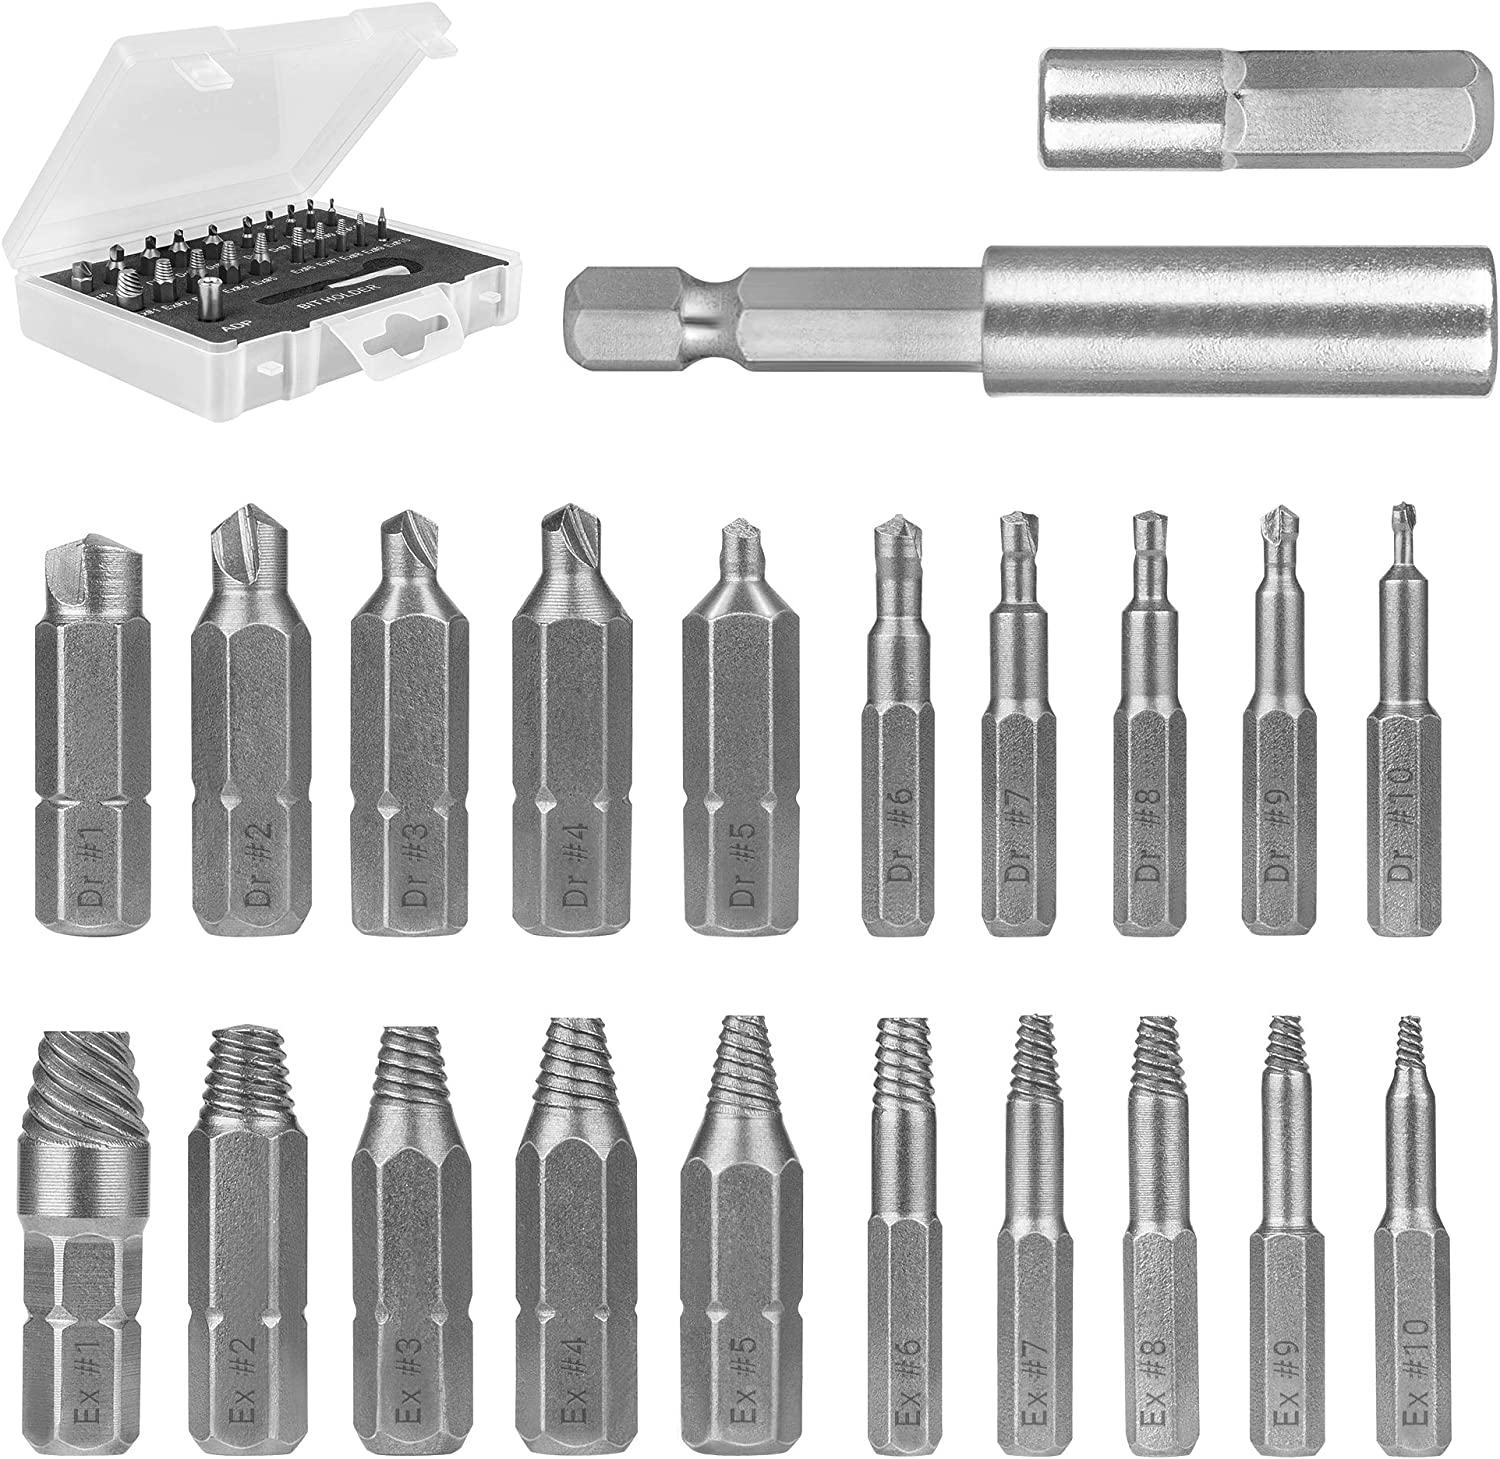 SharCreatives 22 Pieces Screw Extractor Set with Socket Adapter and Magnetic Extension Drill Bit Holder for removing Damaged Screws and Broken Bolts